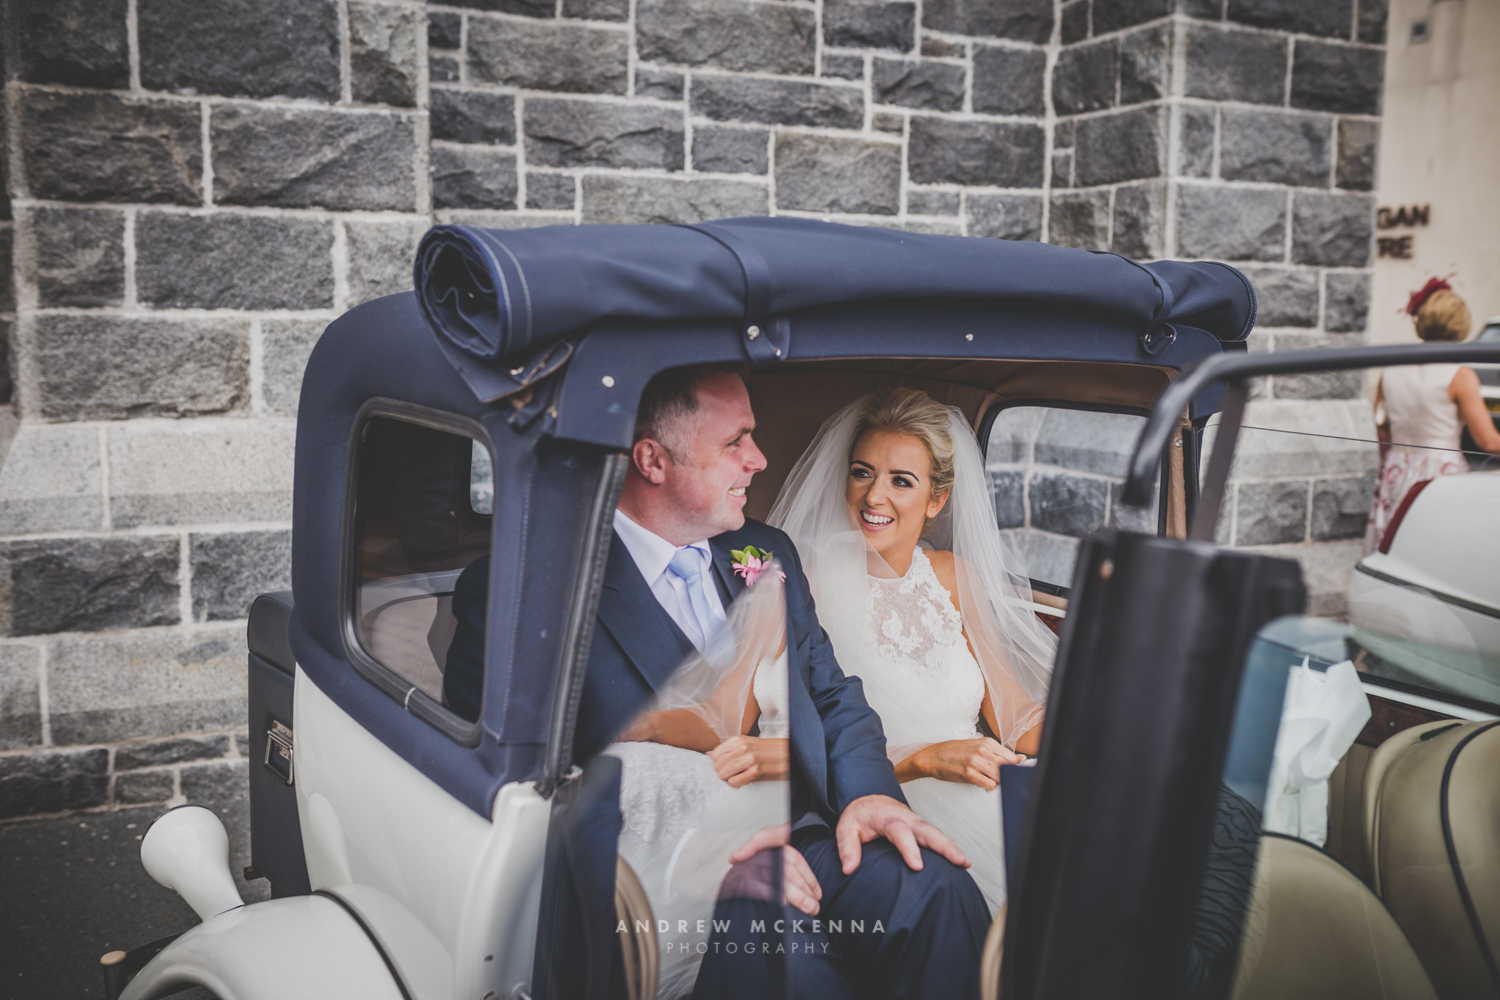 Karen & Steven Carlingford, four Seasons hotel, Photo By Andrew McKenna Photography Newcastle County Down, Northern Ireland. (www.amckphotography.com)